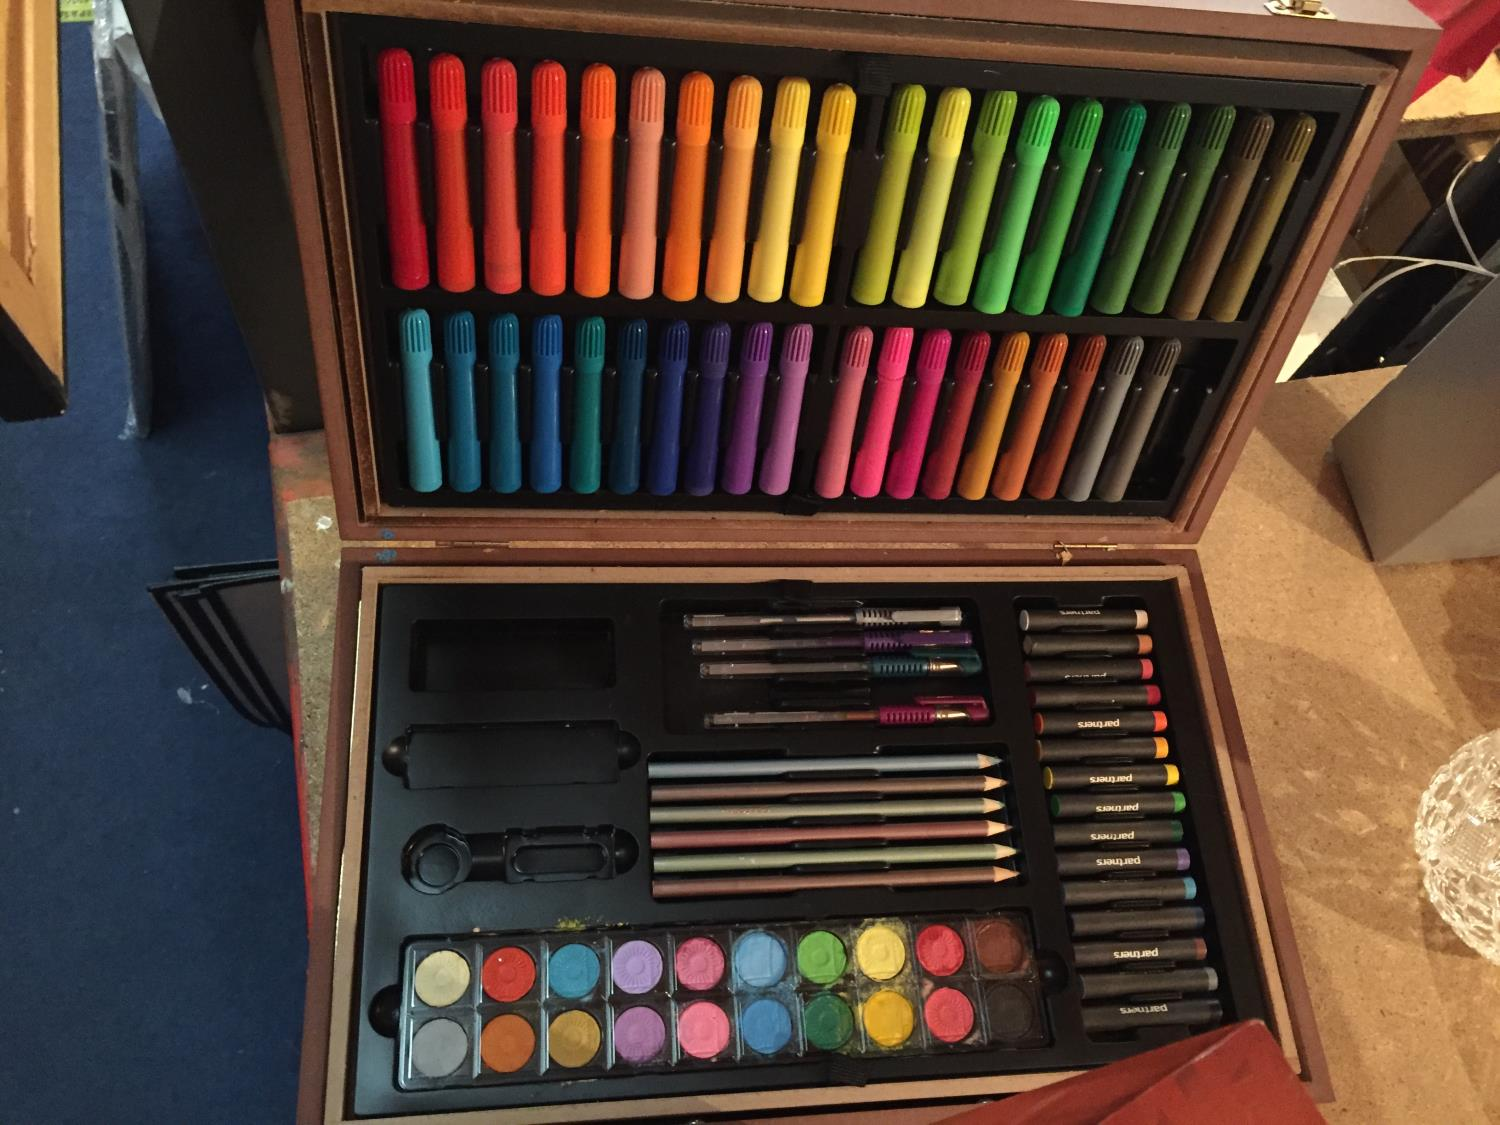 TWO CASES OF ART SUPPLIES TO INCLUDE FELT TIPS, PENCILS, OIL PAINTS ETC - Image 6 of 12